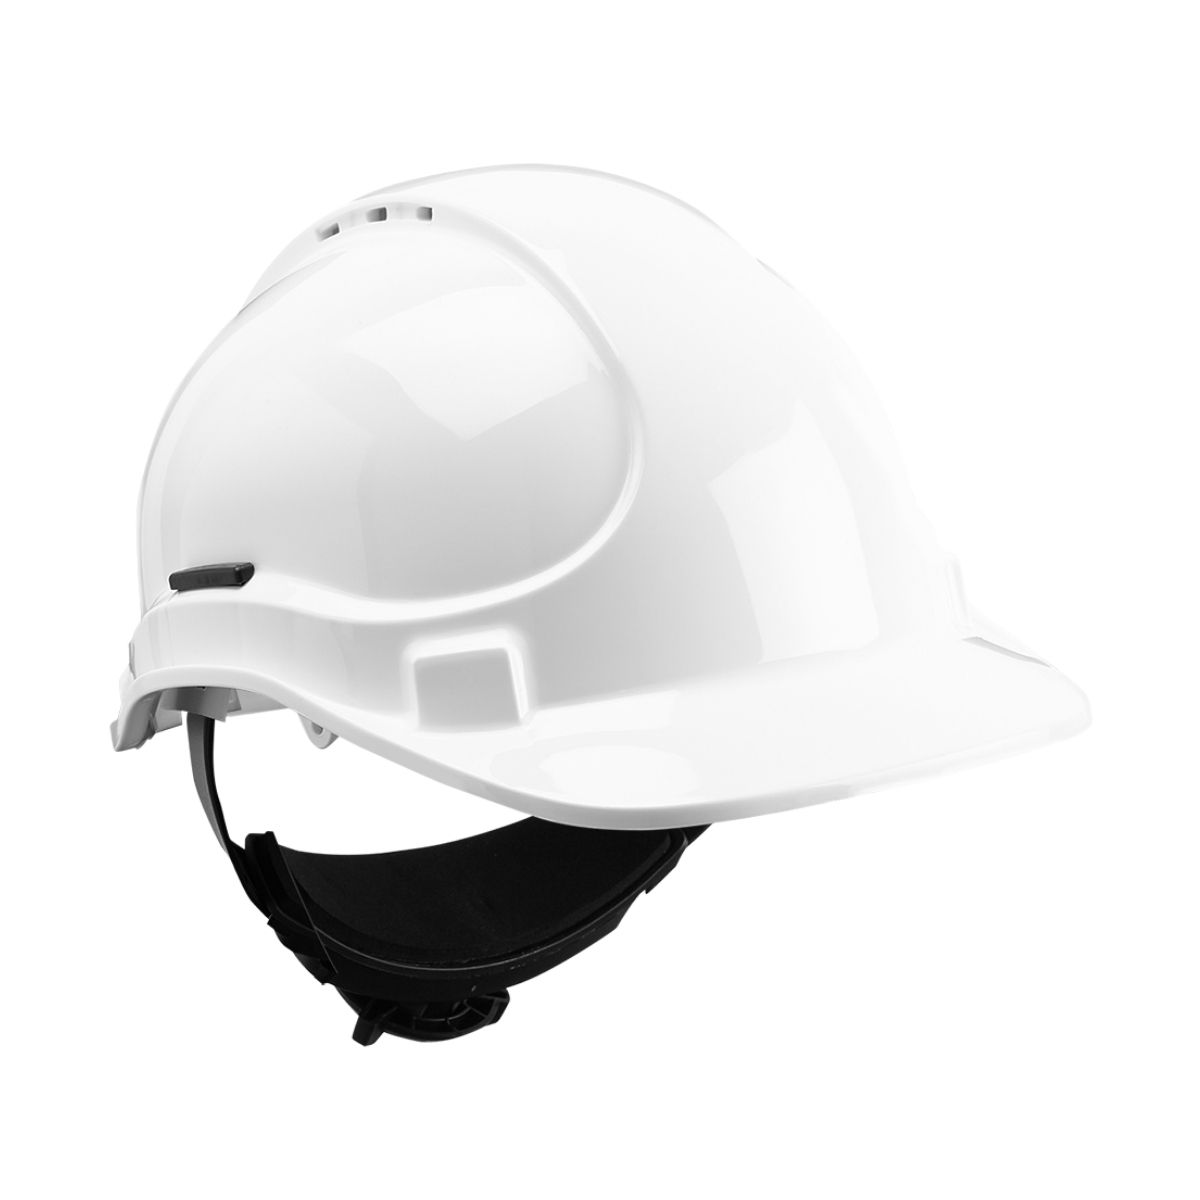 HF2003 Peltor G3000 Safety Helmet Vented with Ratchet Adjustment